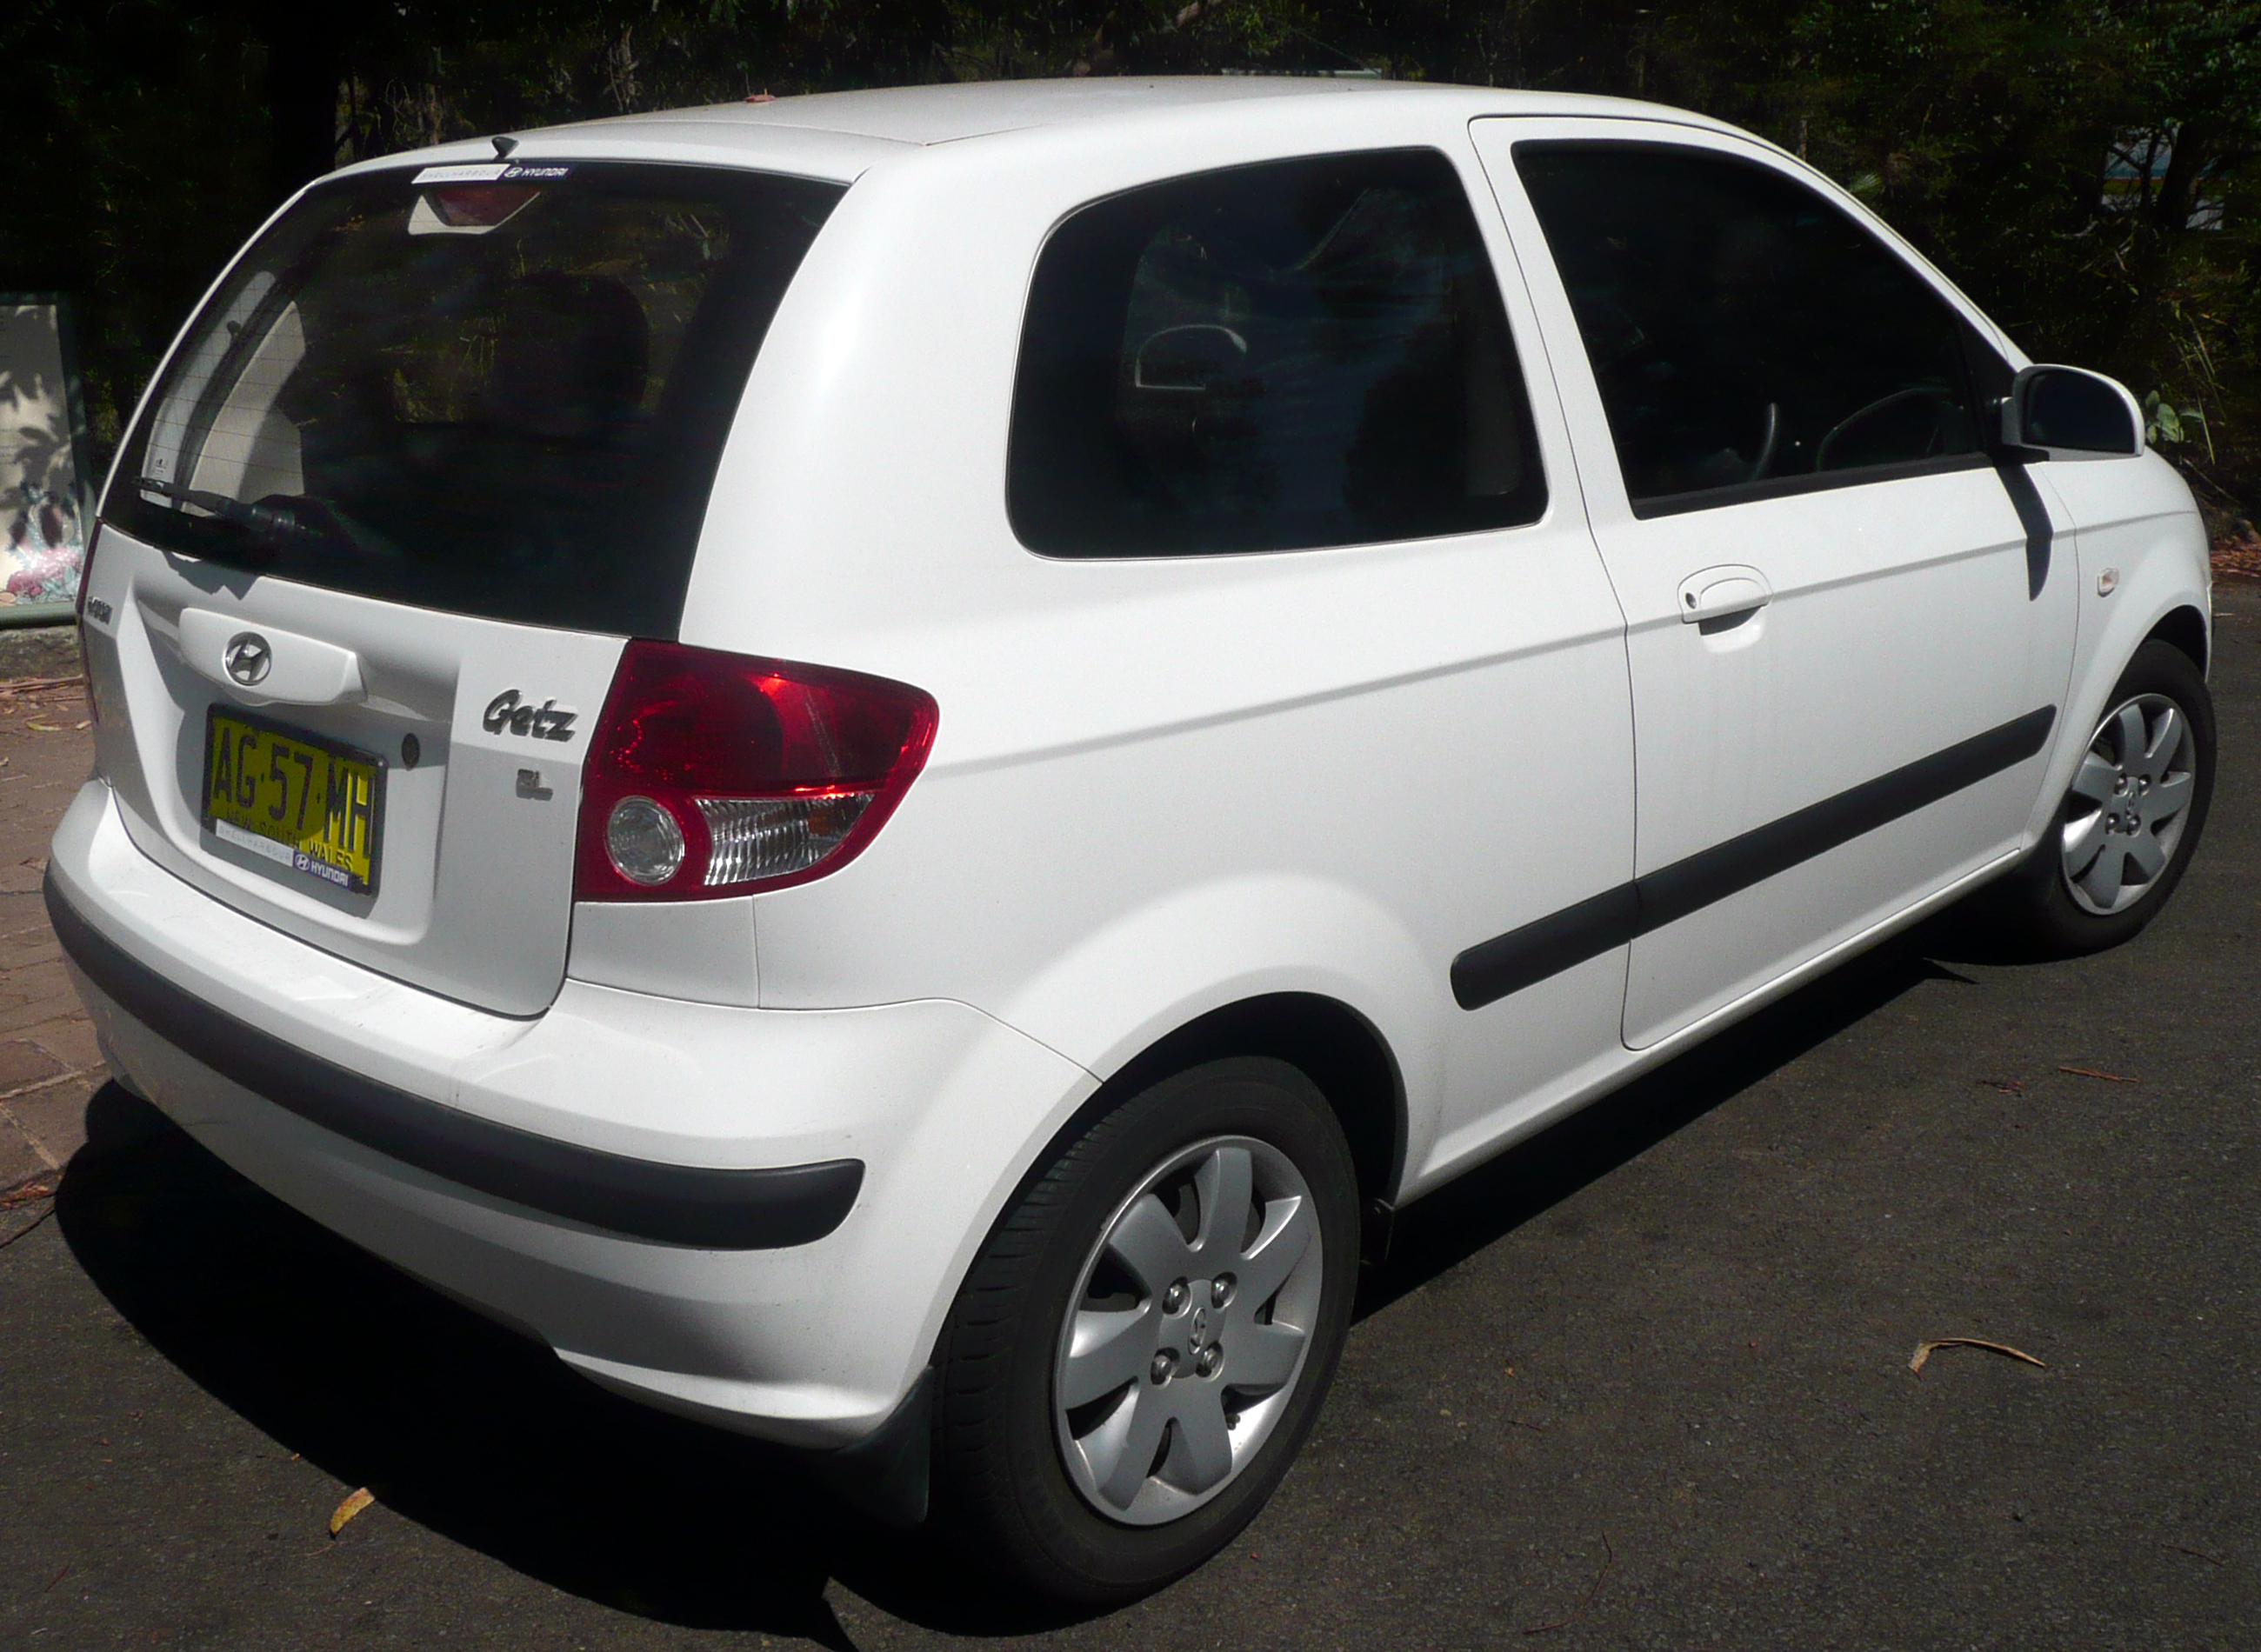 file 2005 hyundai getz tb my05 gl 3 door hatchback 2009 01 16 wikimedia commons. Black Bedroom Furniture Sets. Home Design Ideas